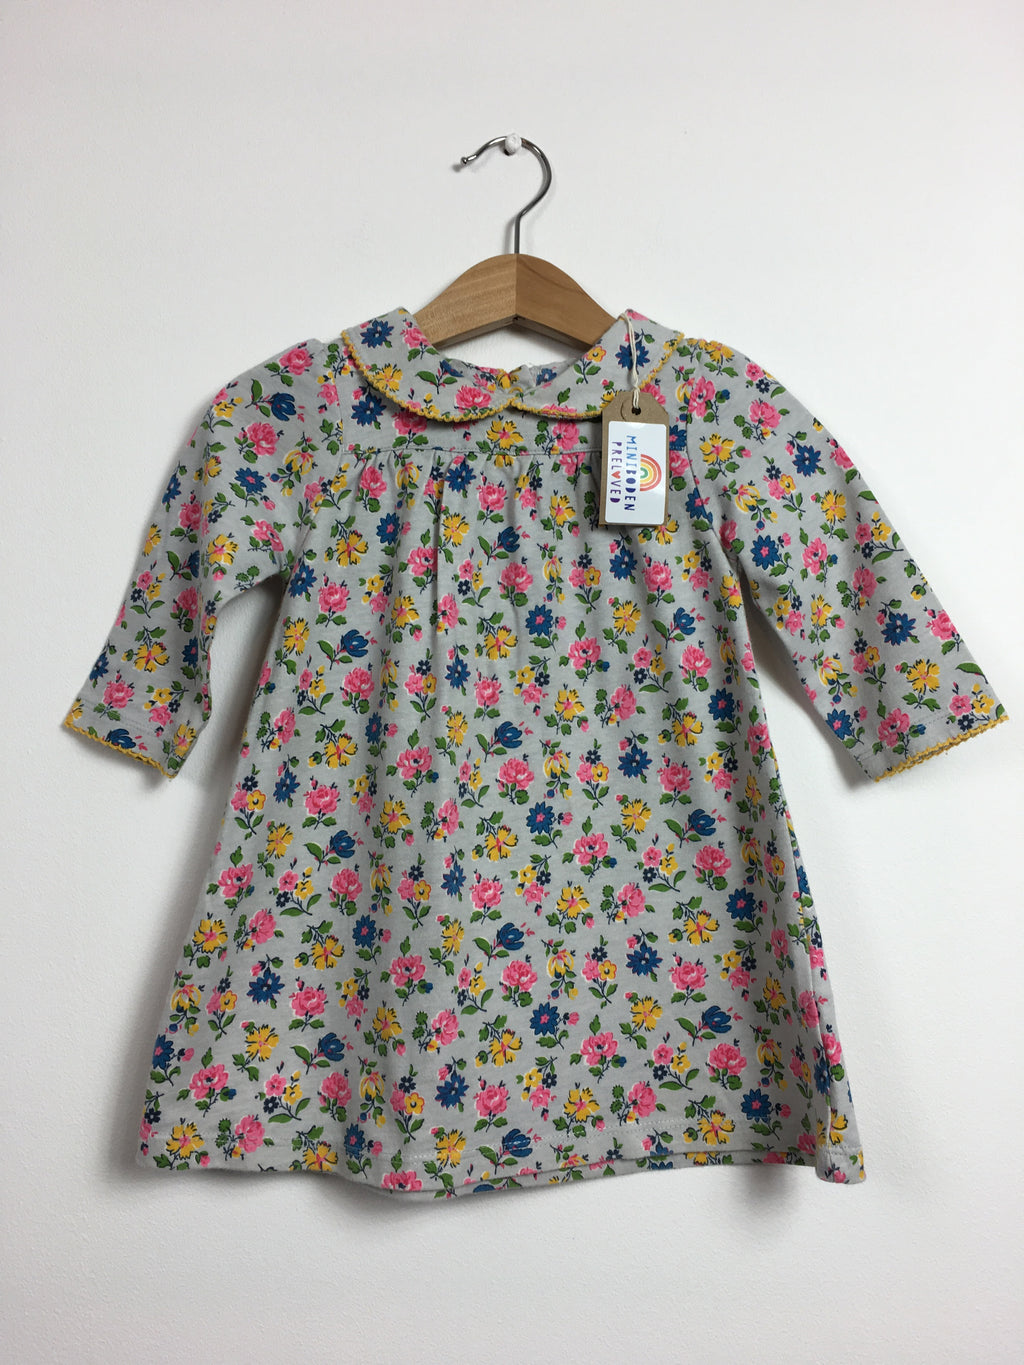 Peter Pan Collared Liberty Print Dress (6-12 Months)